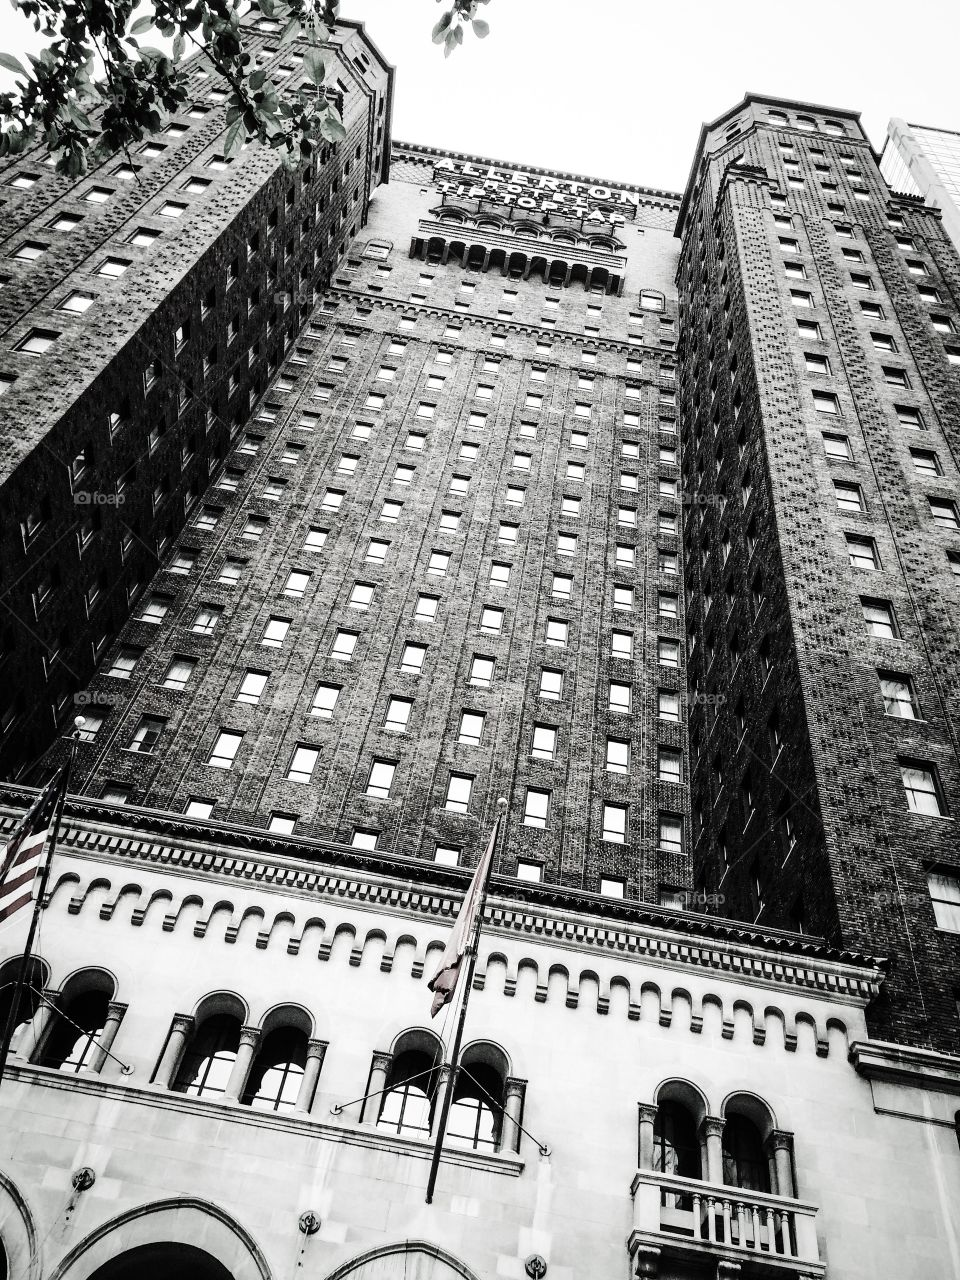 Allerton Hotel, Michigan Avenue, Chicago. Home of the famous Tip Top Tap which unfortunately is no longer open to the public.